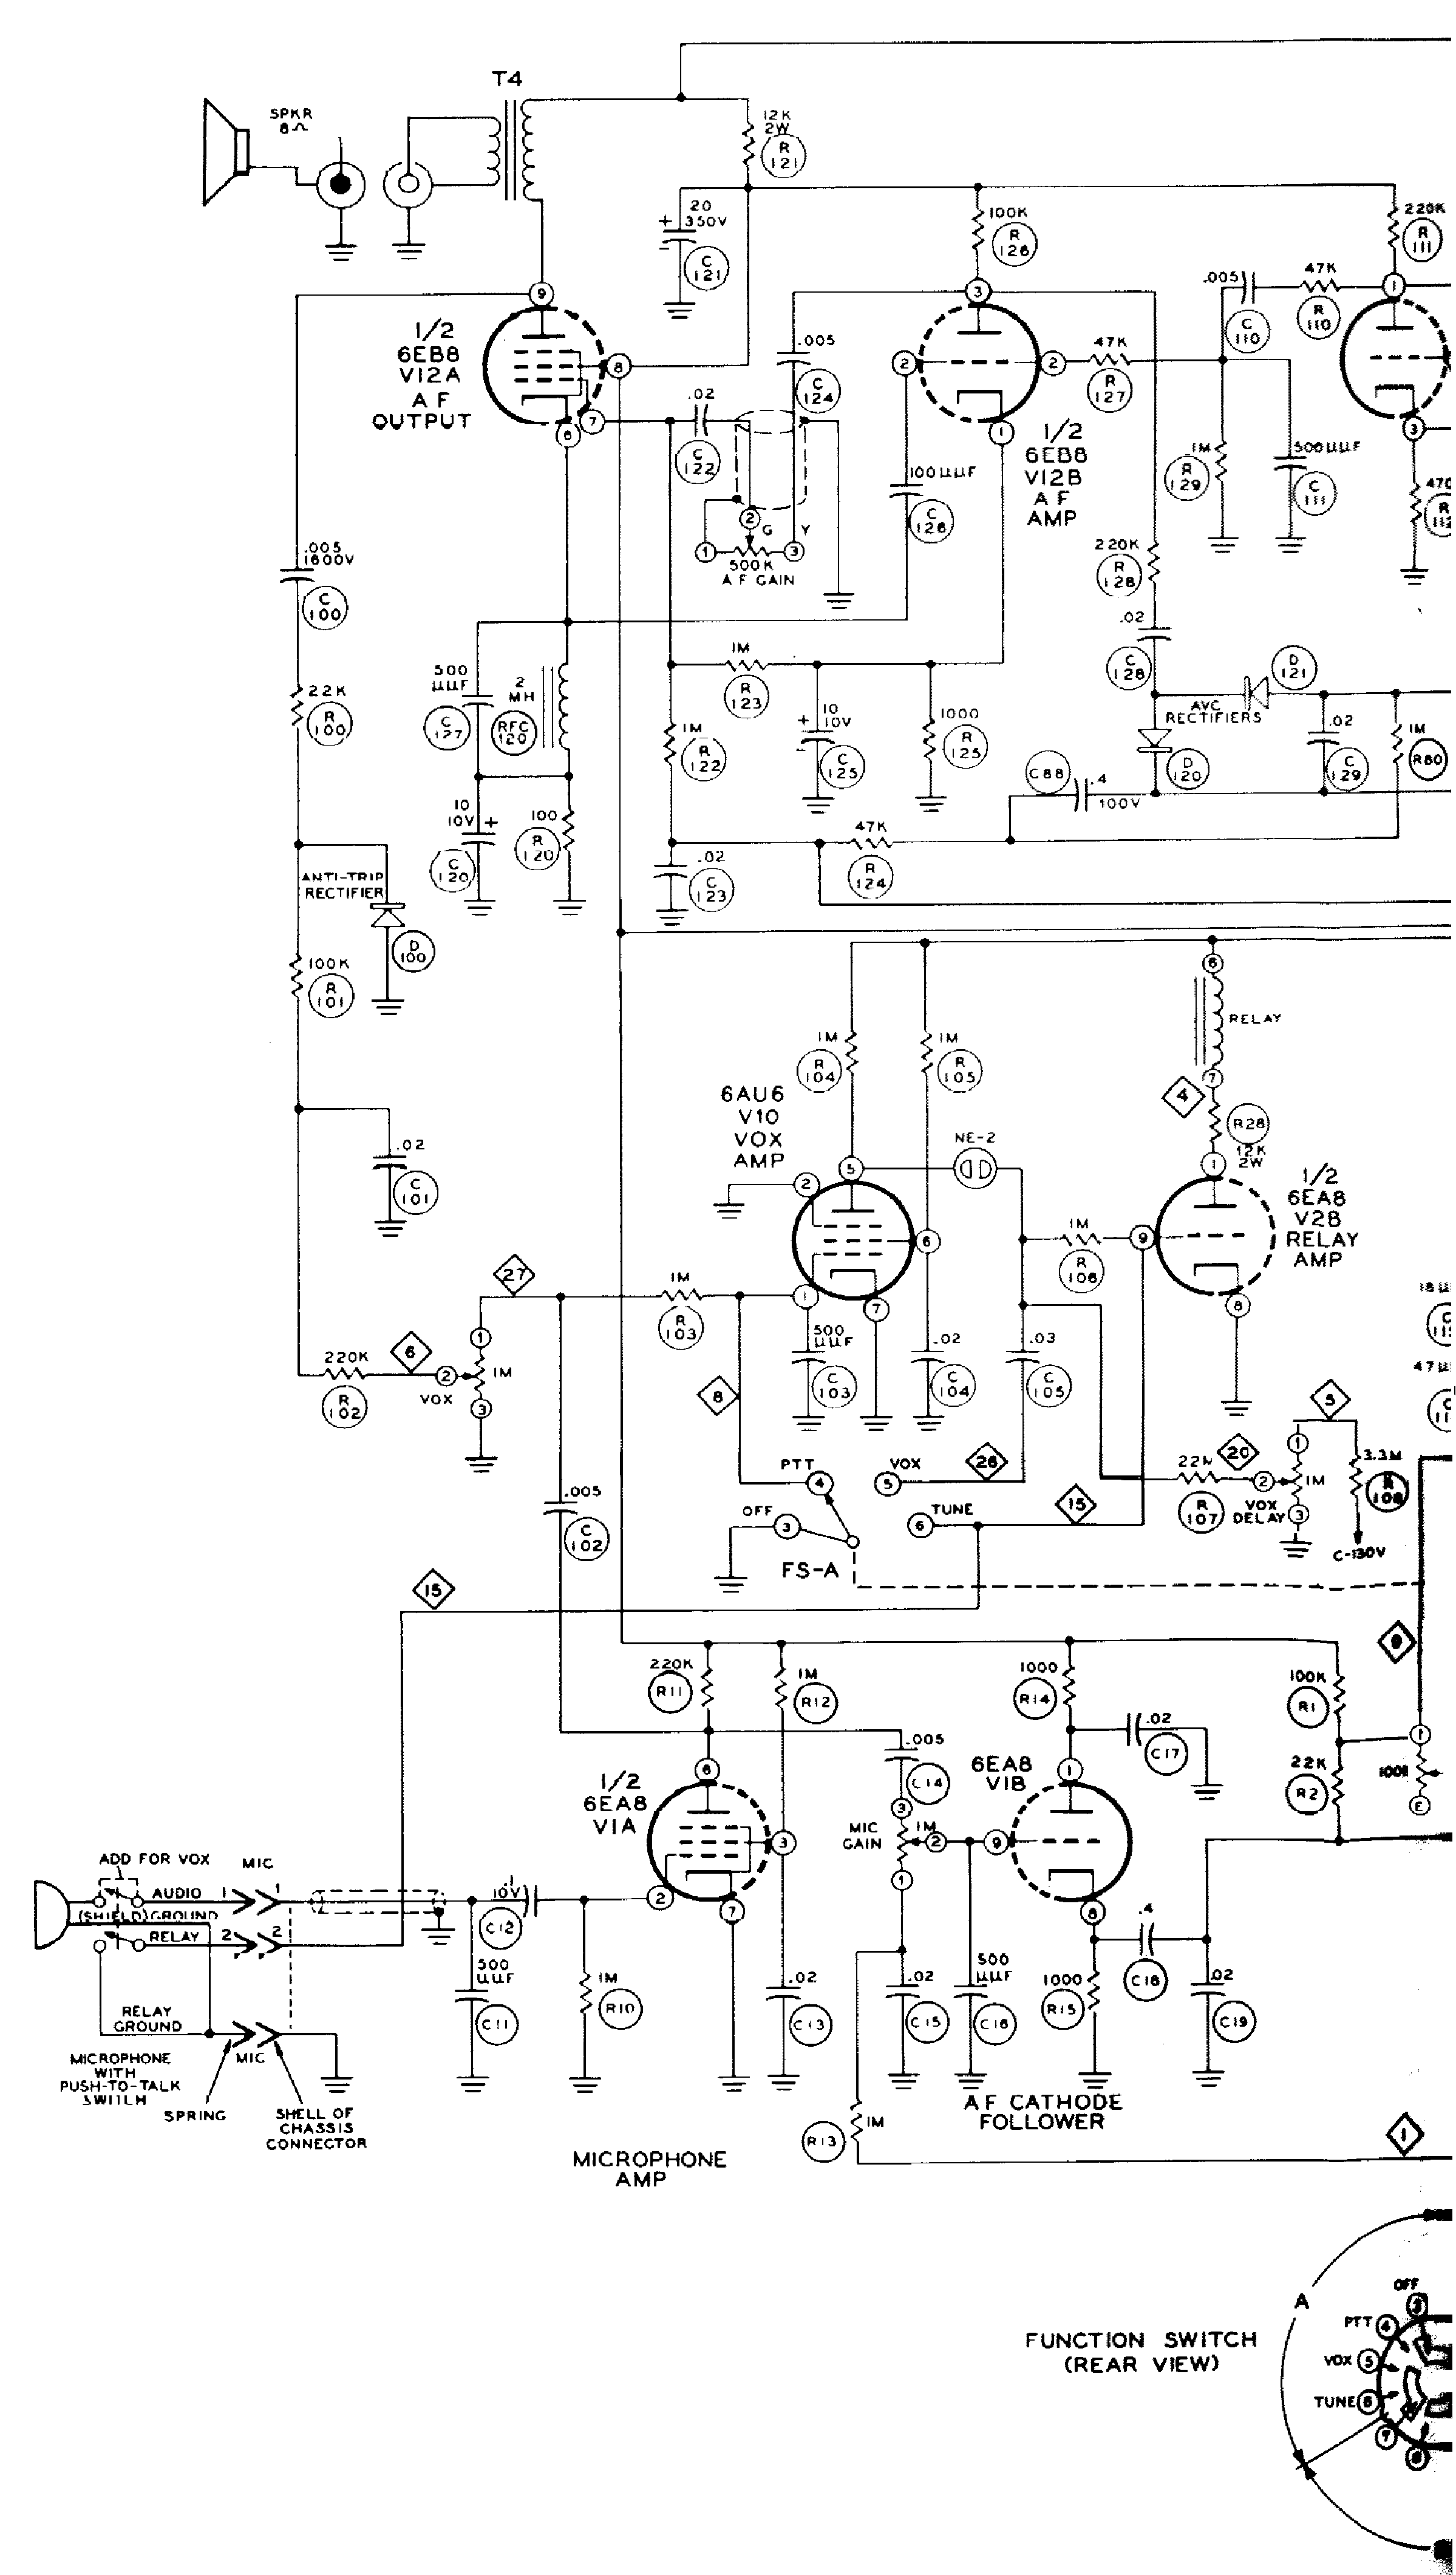 HEATHKIT HW-16 CW TRANSCEIVER SM Service Manual download